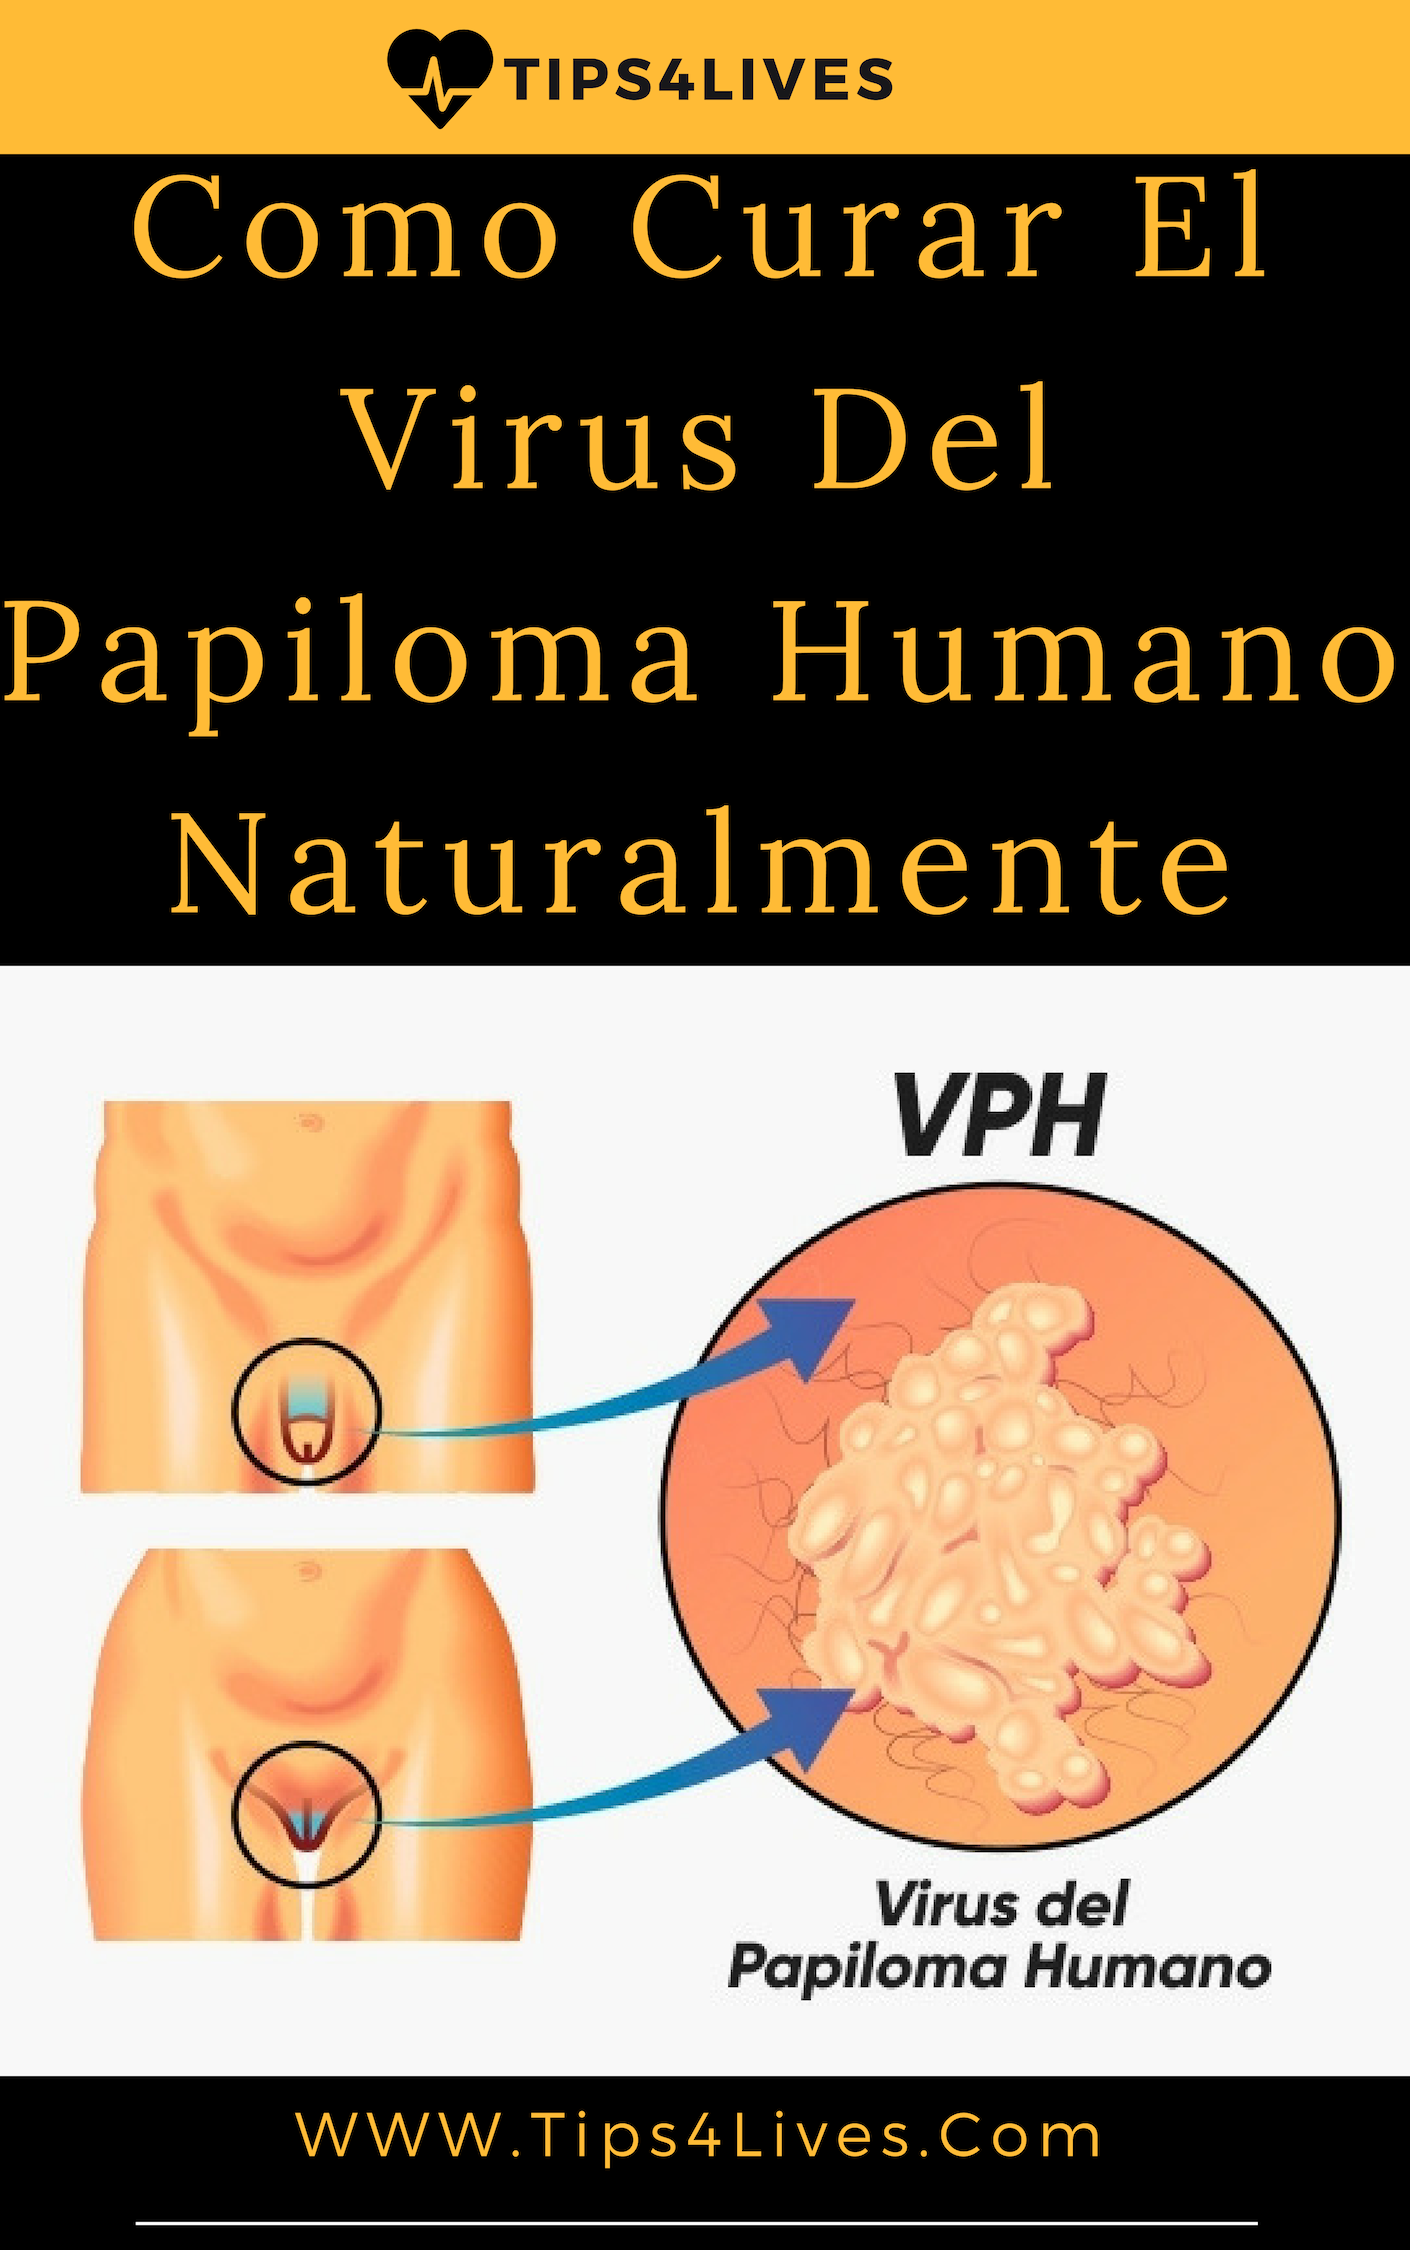 hpv research news papilloma pronunciation